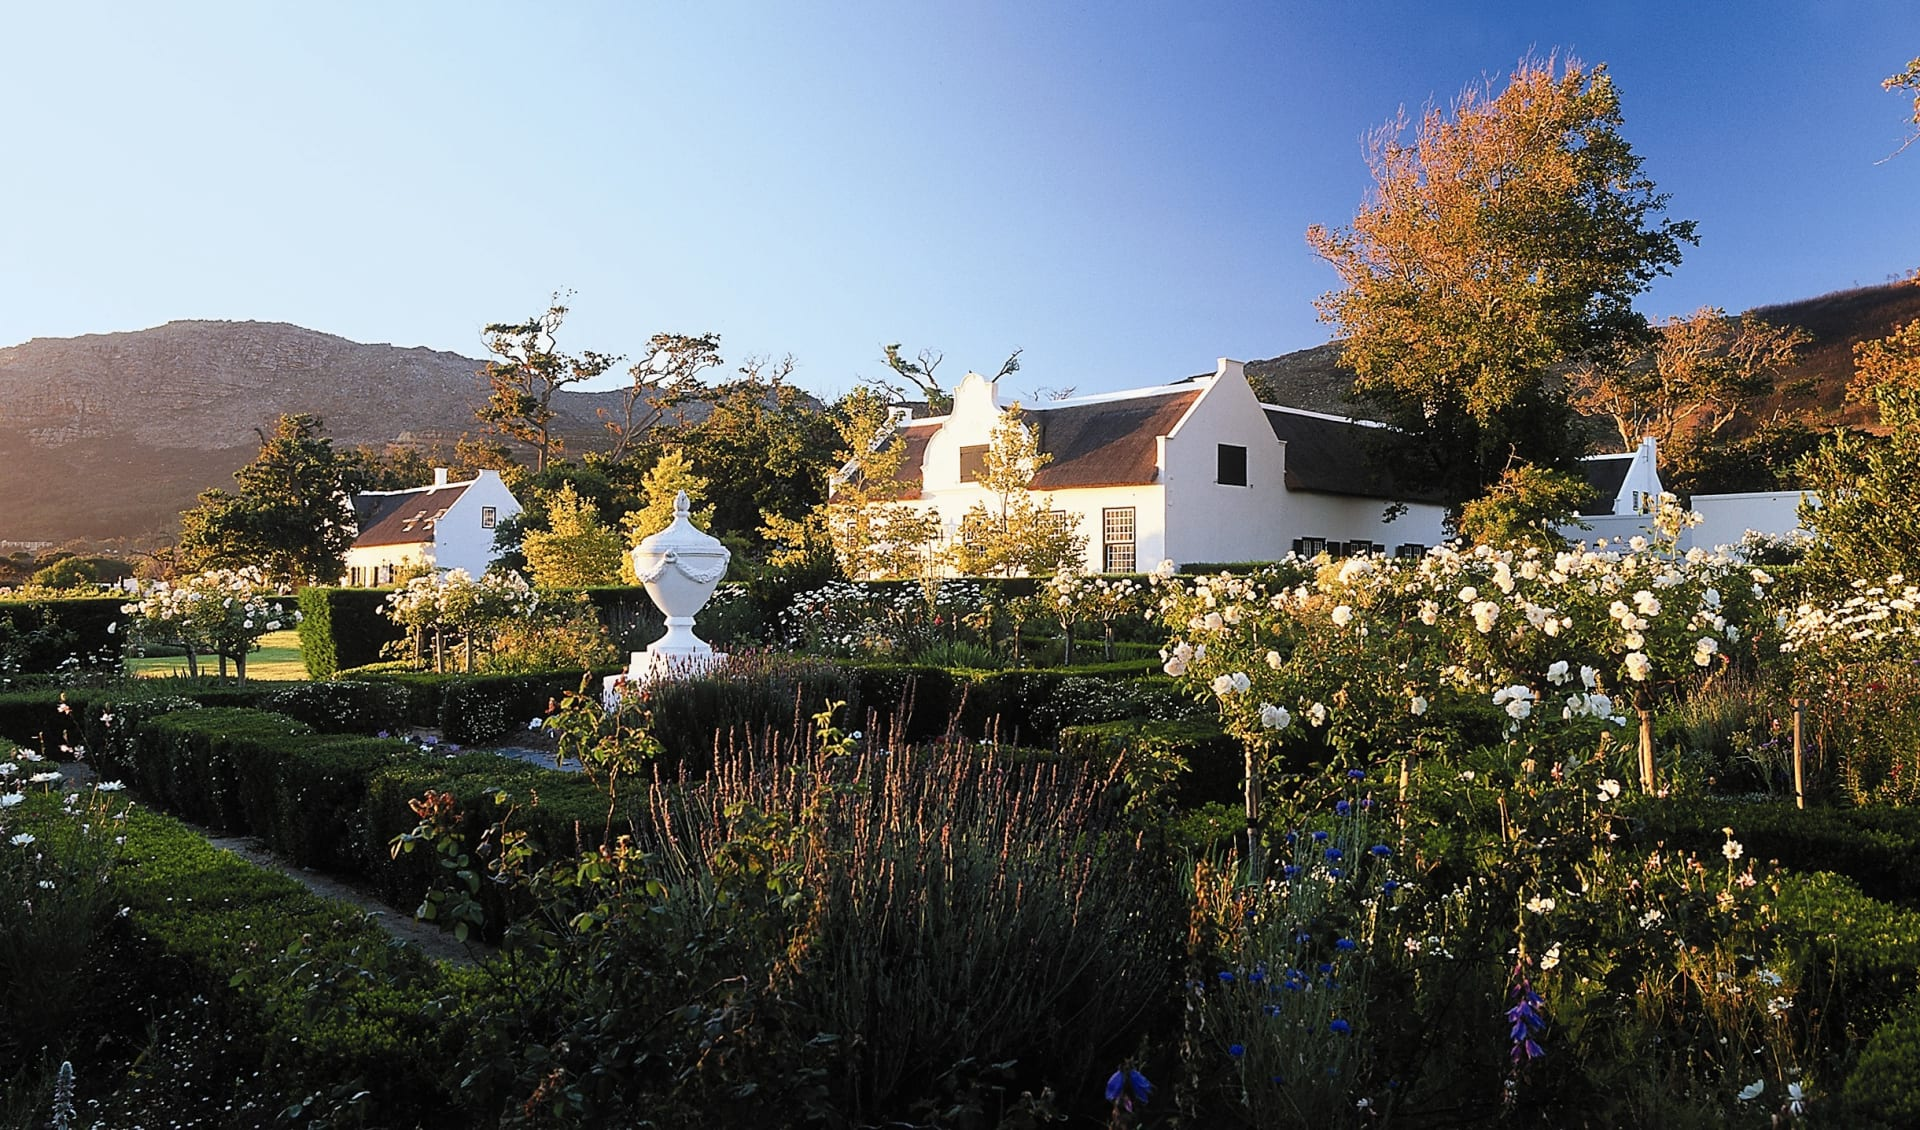 Steenberg Hotel & Golf Estate in Kapstadt:  Steenberg Hotel & Golf Estate - Gartenanlage